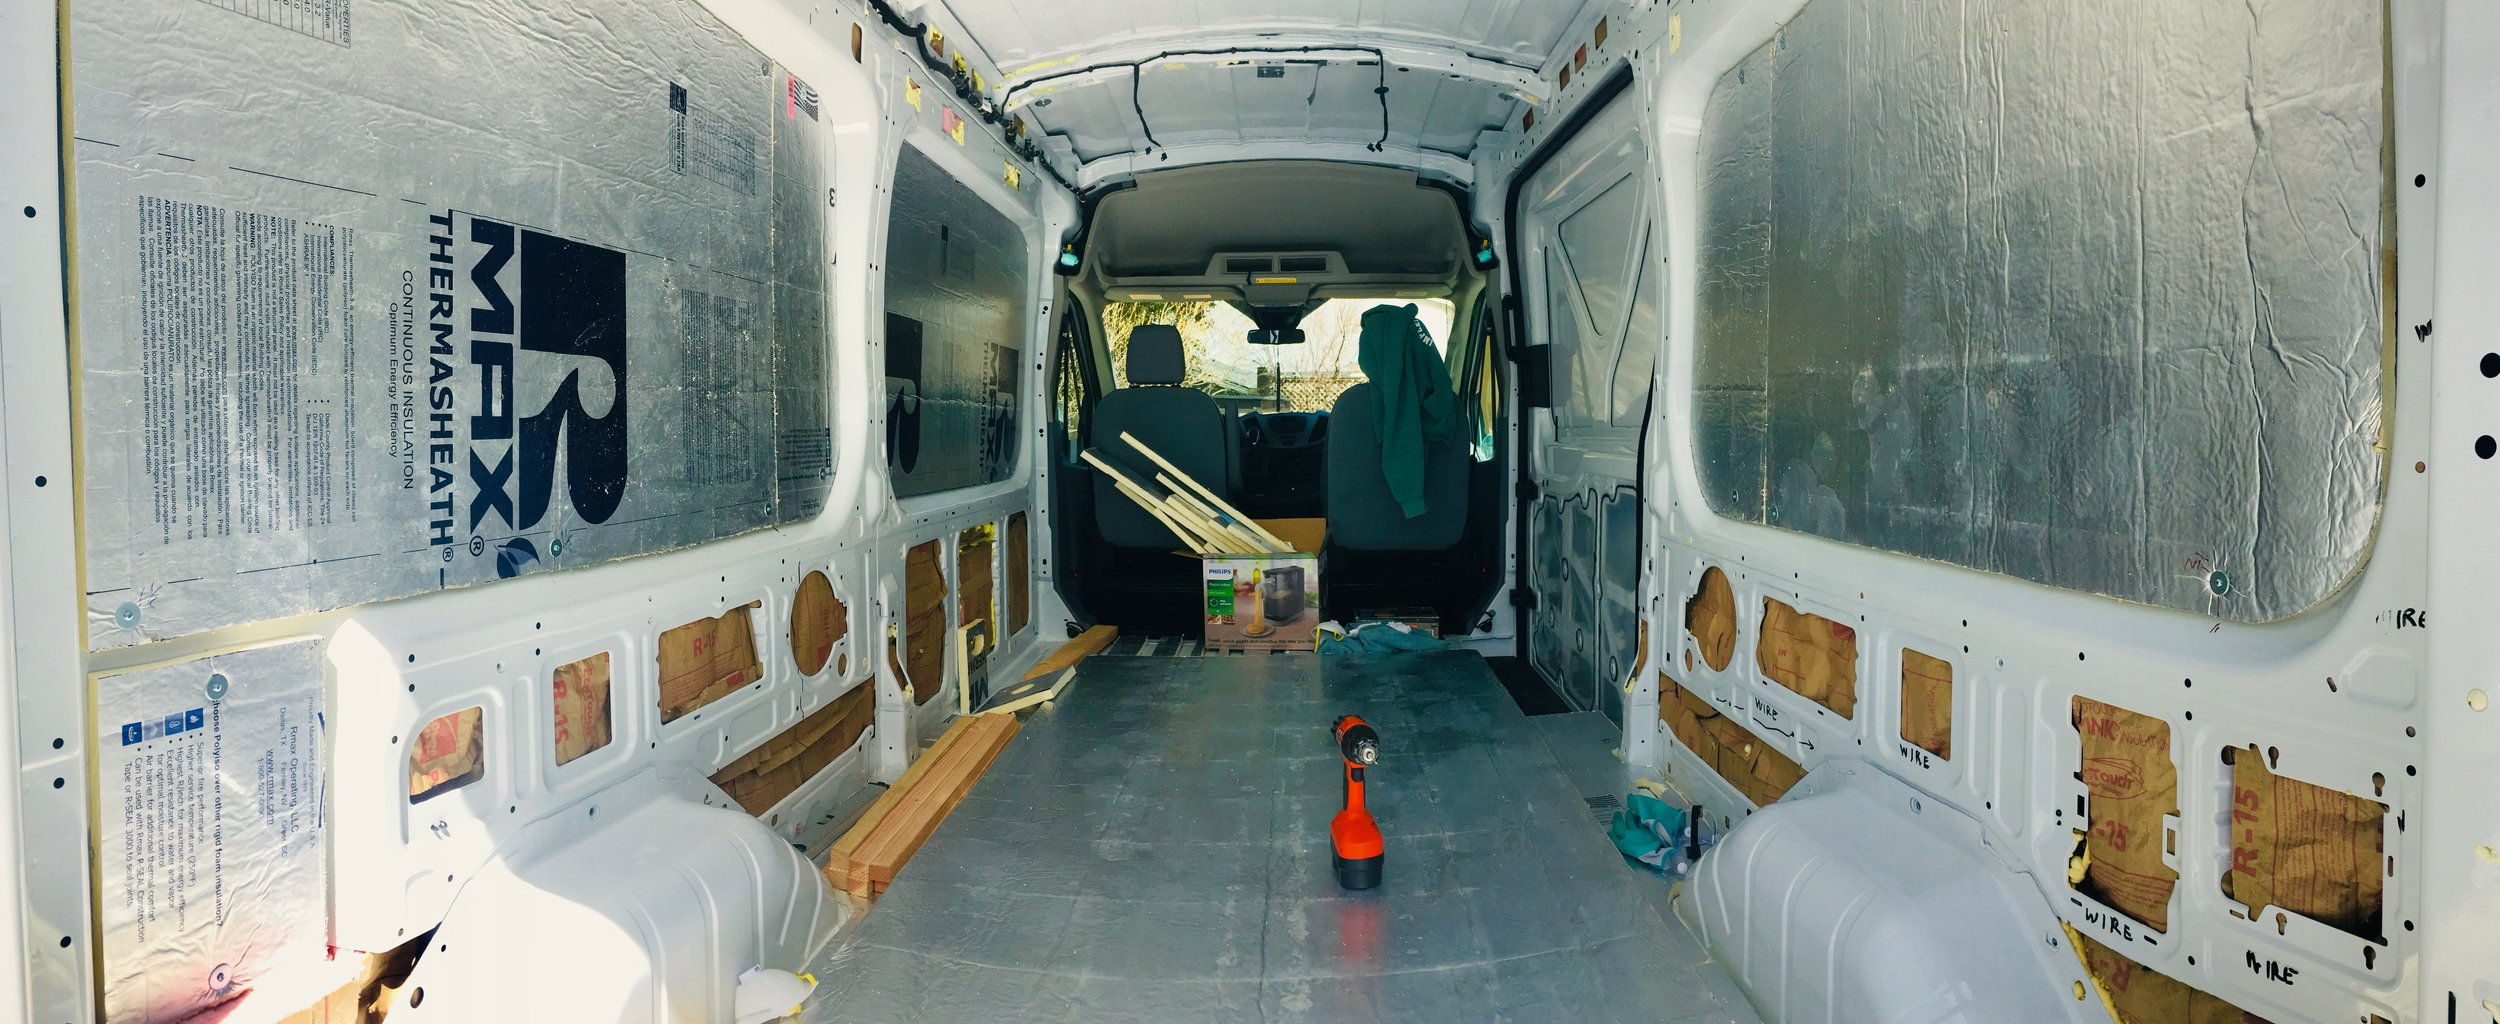 The interior is starting to look less like a cargo van